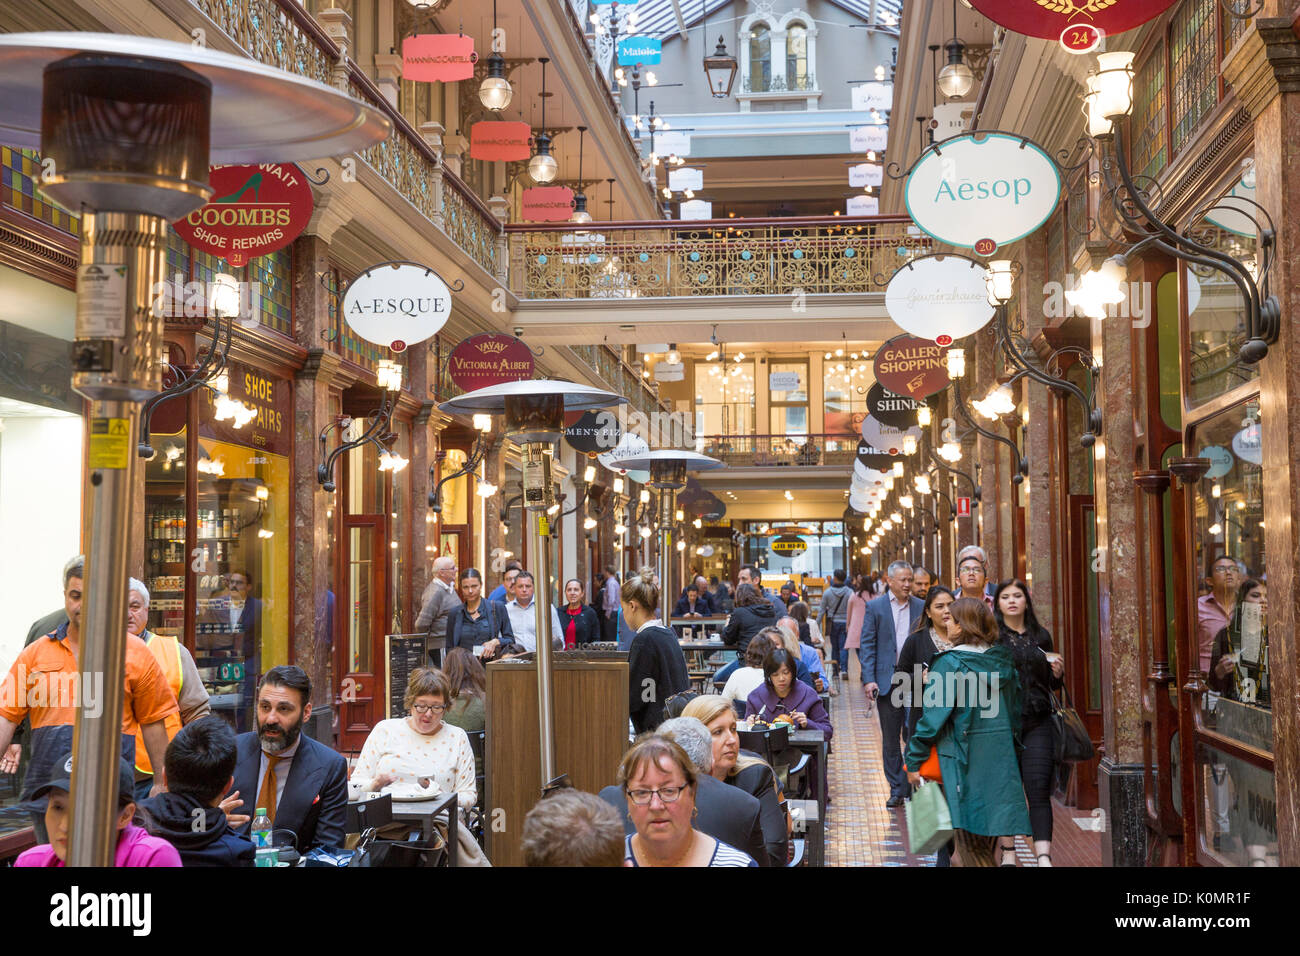 The Strand Arcade built in 1891 is Sydney's only remaining Victorian retail arcade, located in the city centre, with upmarket shops and stores - Stock Image